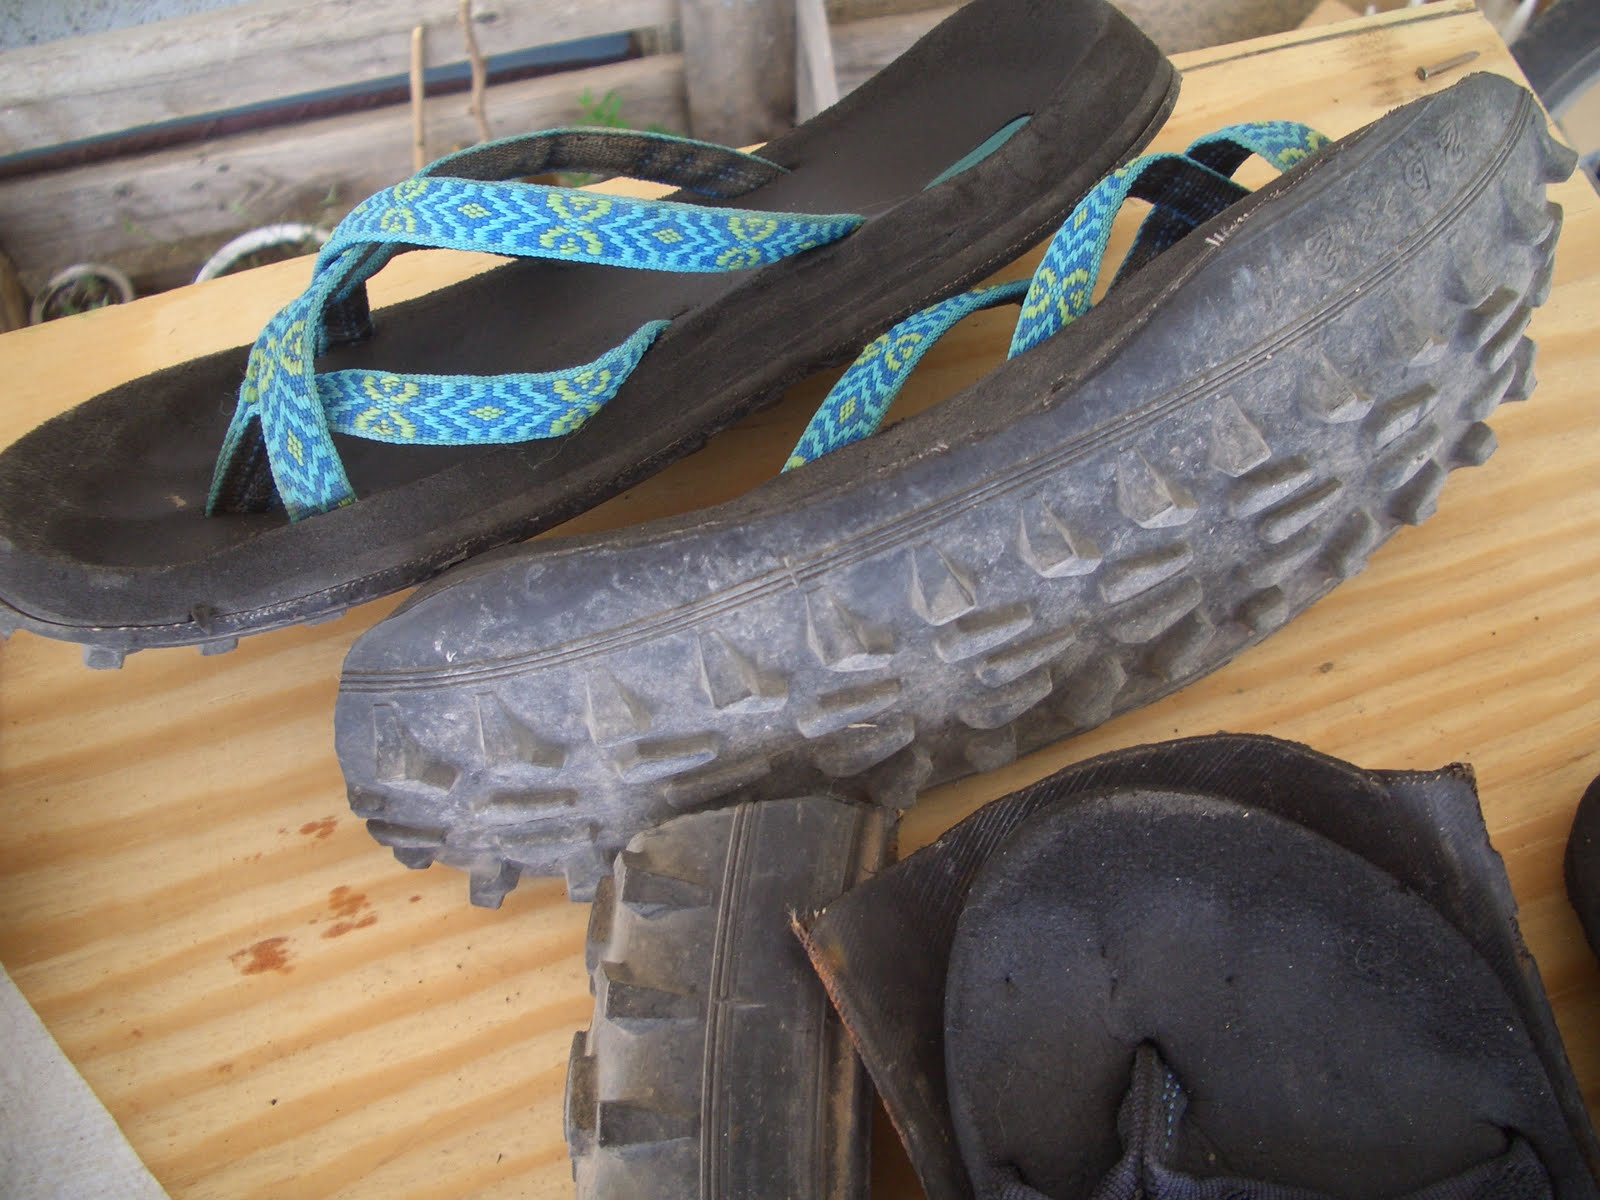 Recycling Old Tyres Into Shoes Is One Of The Latest Innovations In Uganda Ventures Africa